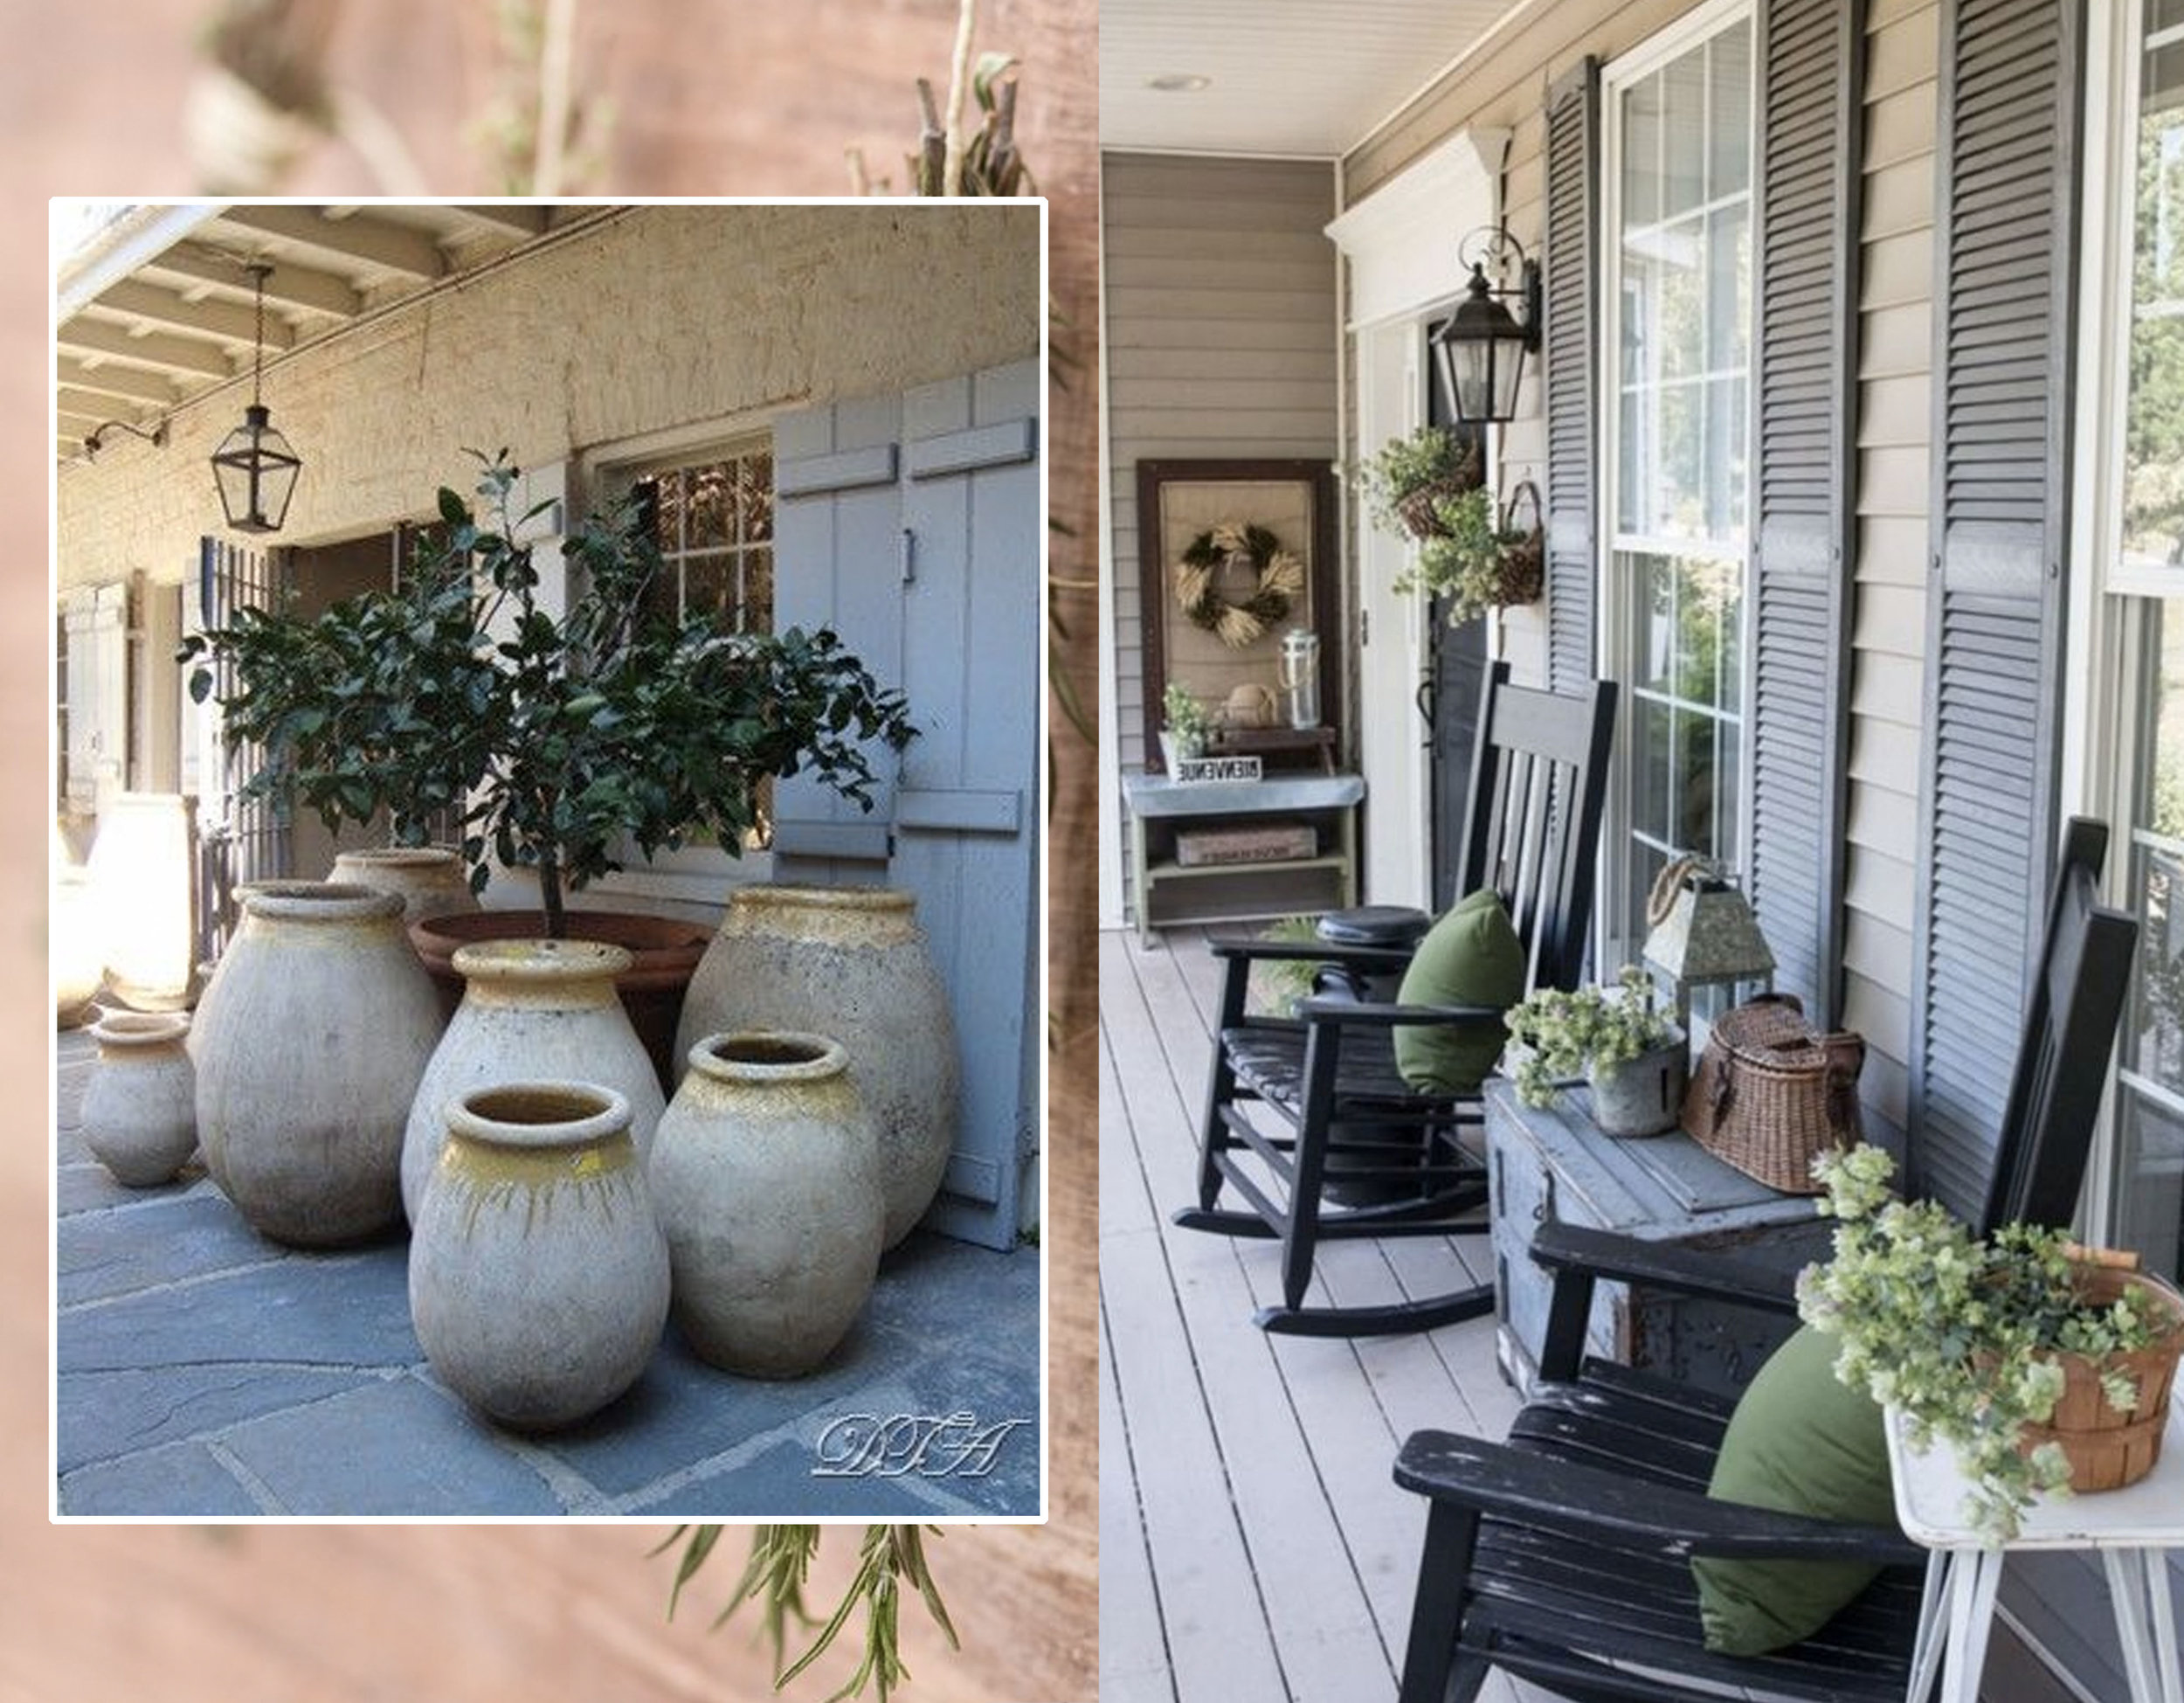 dried herbs via  Organic Authority  - planters via  Datura  - country style patio via  Instadecoration